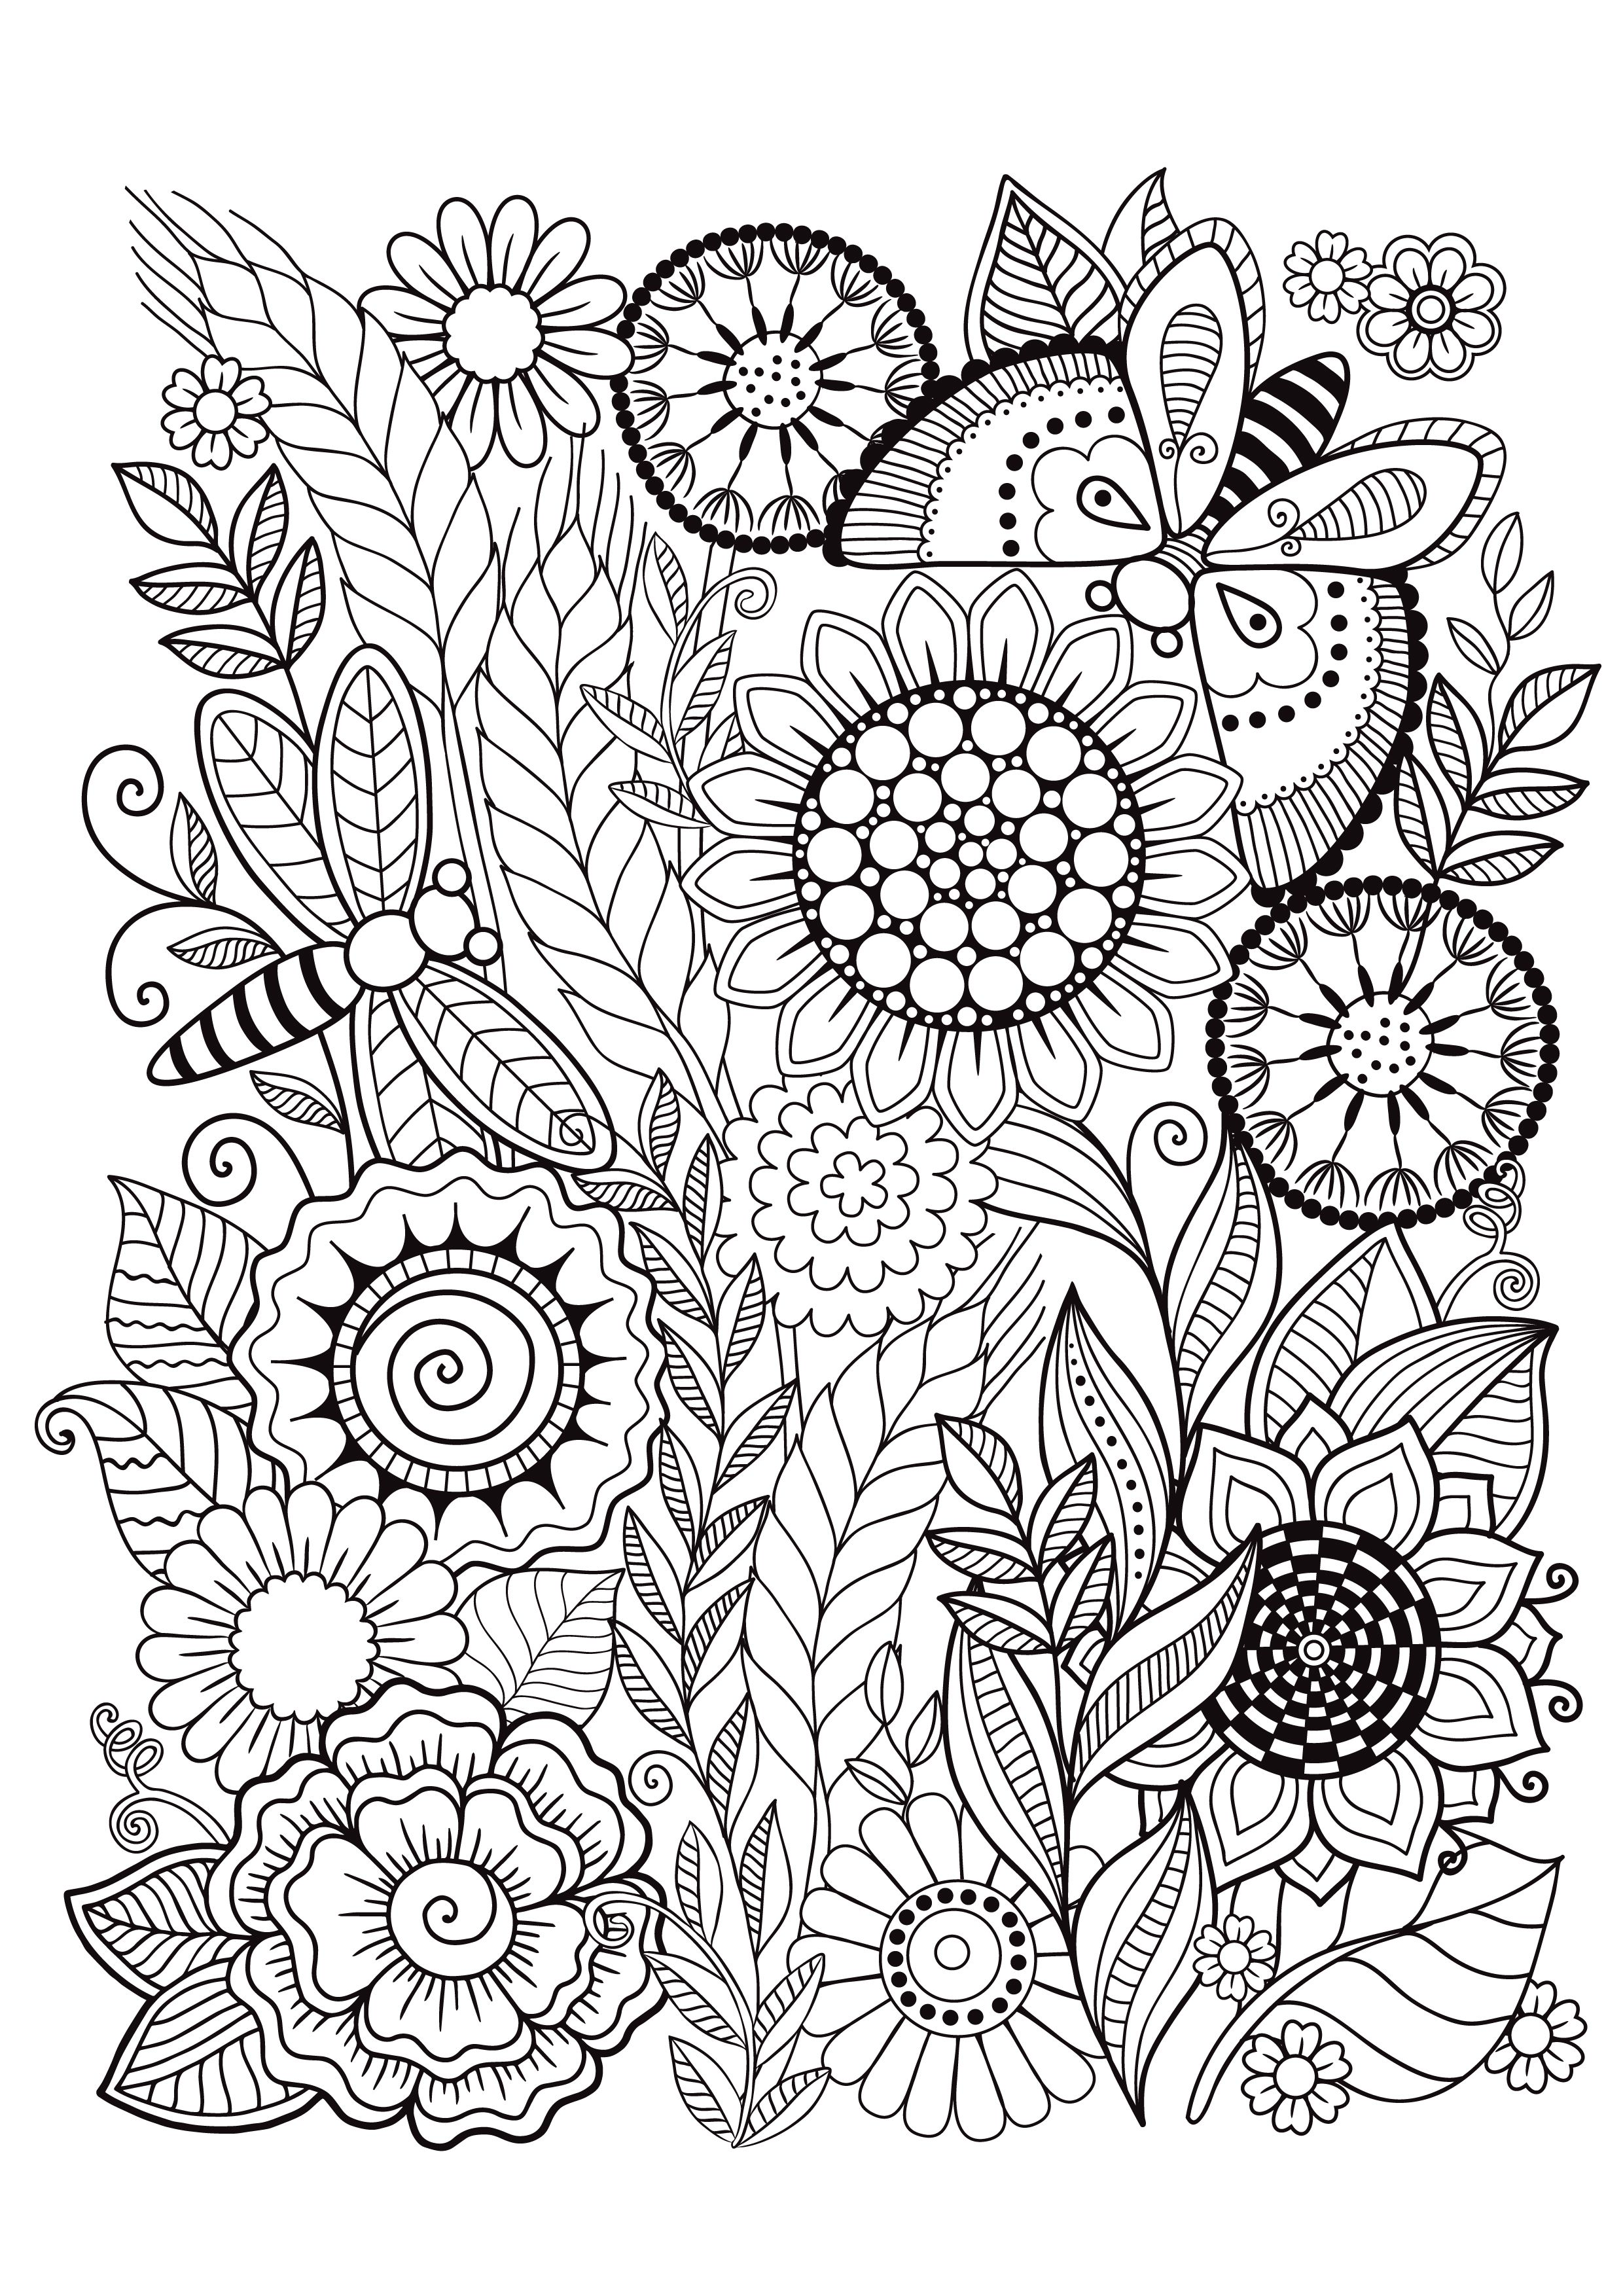 - Mindfulness Coloring Pages - 12 Flowers Mindfulness Colouring